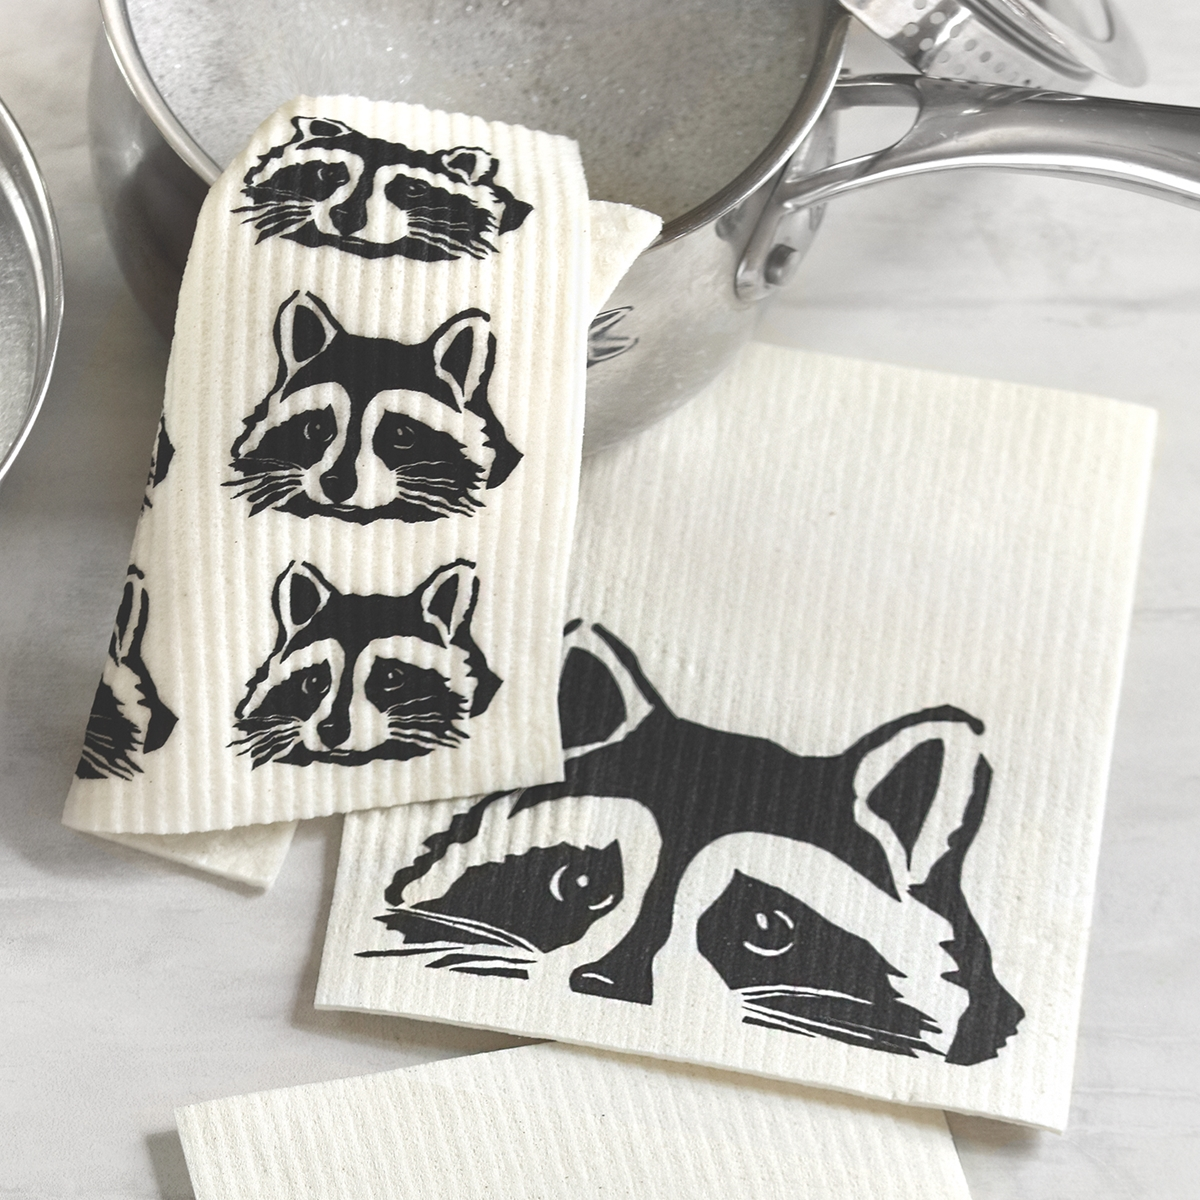 Peeking Raccoon Dish Cloth Set